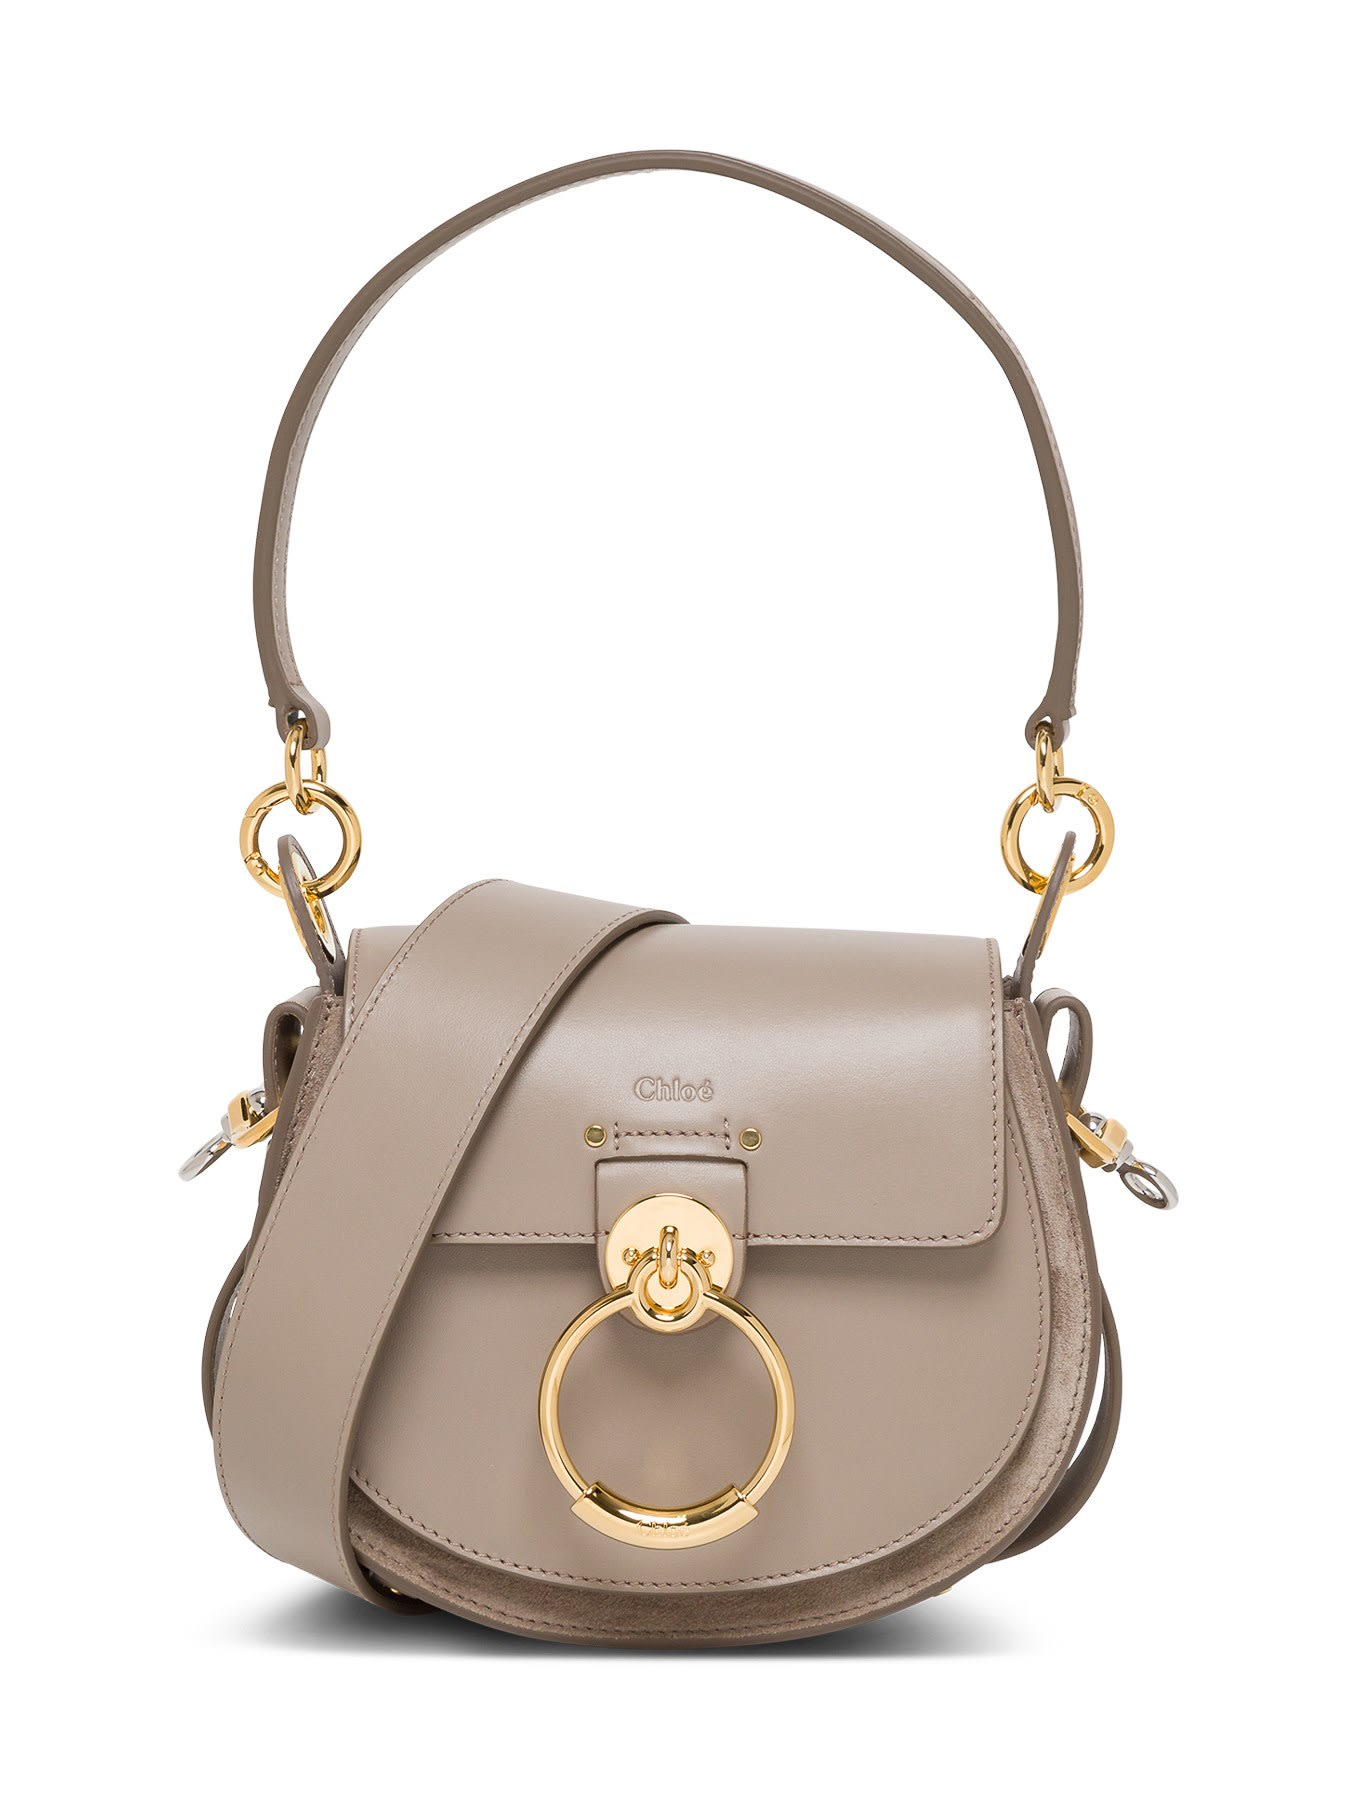 Chloé SMALL TESS SHOULDER BAG IN LEATHER